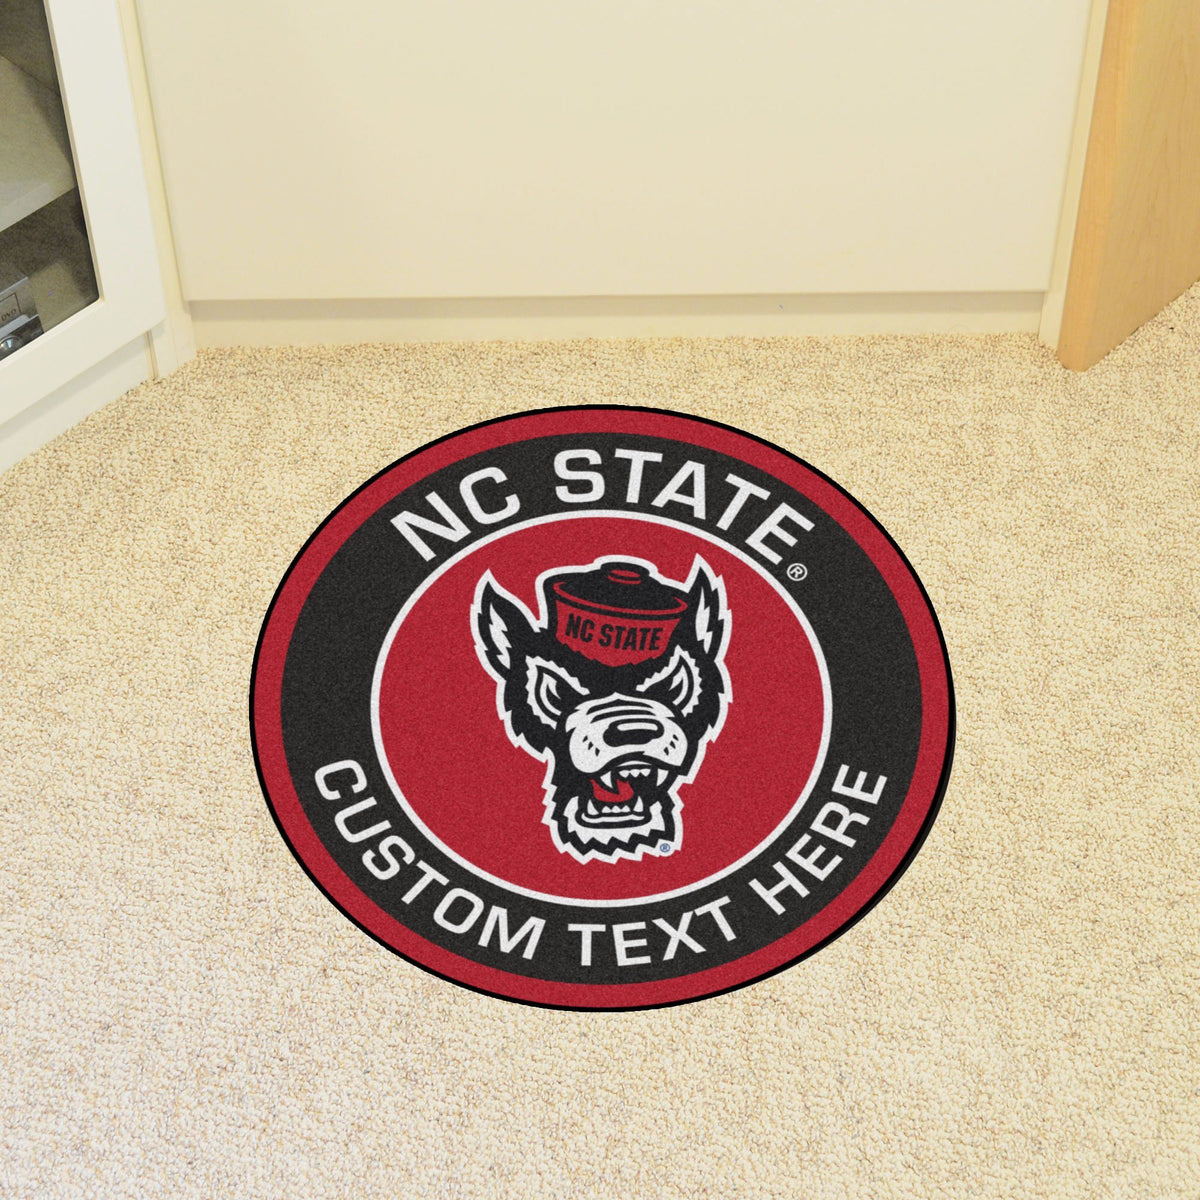 Collegiate Personalized Roundel Mat Personalized Roundel Mat Fan Mats North Carolina State University